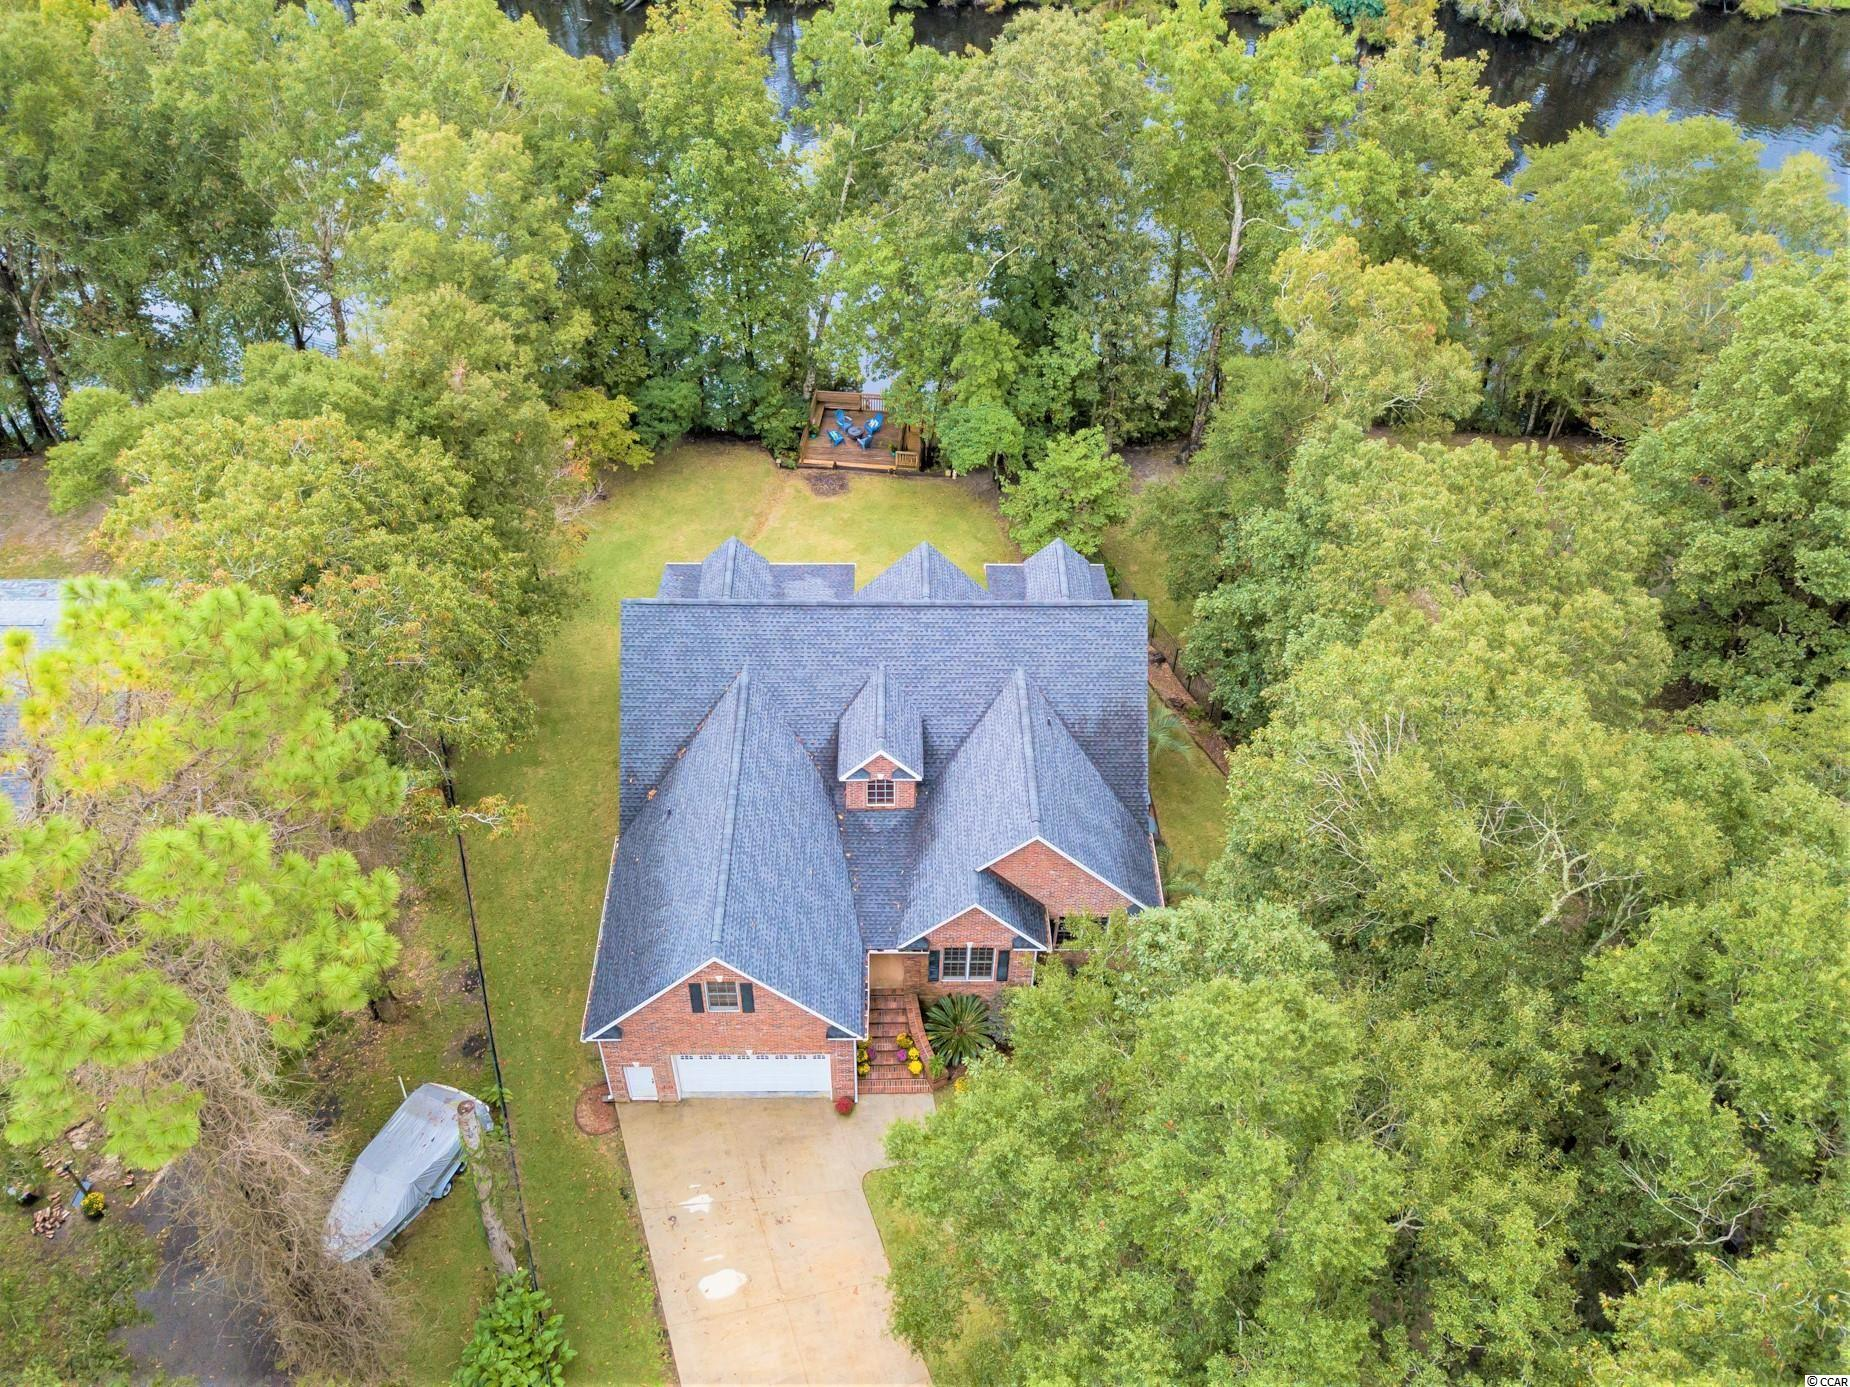 Nothing could be finer than to be in Carolina on the R-I-V-E-R! Introducing 412 Apache Road located on Black River in historic Georgetown, South Carolina!  Beautiful custom built all brick home sitting on .80 acre lot. With five bedrooms and a huge bonus, there is plenty of space for everyone to enjoy.  As soon as you enter the foyer your eyes will be drawn straight to the back French doors and out onto the water. Throughout the home you will be impressed by the gorgeous oak floors, stained trim/moldings, custom blinds, solid wood doors and efficient tankless water heater. The main living level showcases a large great room with vaulted ceilings, gas fireplace with built-in bookshelves, open kitchen/dining area with large breakfast bar, granite countertops, pendant lighting, custom cherry cabinets, soft close drawers, and corner pantry. Enjoy your peaceful morning coffee on the screened porch off the kitchen or the open porch facing the back yard.  The large owner's suite is also on the first floor and features tray ceilings, screened porch facing the water, his and hers closets, bathroom suite with shower, jetted tub and separate vanities.  A private study, laundry room and two more bedrooms with a shared bath are also on the main level. Upstairs there is a spacious bonus room, walk-in attic, plus two large bedrooms each with vaulted ceilings, dormer windows with storage bench, and each with multiple closets.  There is absolutely no wasted space in this home, really a functional floor plan. Now let's talk about the exterior!  Giant front yard, overflow parking, two car garage, black aluminum fencing around the perimeter of property, and new roof. In the back yard it's all about the view from the top deck with bench seats overlooking the water, another lower deck and stairs leading to the floating dock and river.  Fish, grill, relax, and not in that order! Apache is also a fun boat ride to historic downtown Georgetown waterfront Harbour Walk where you will find amazi